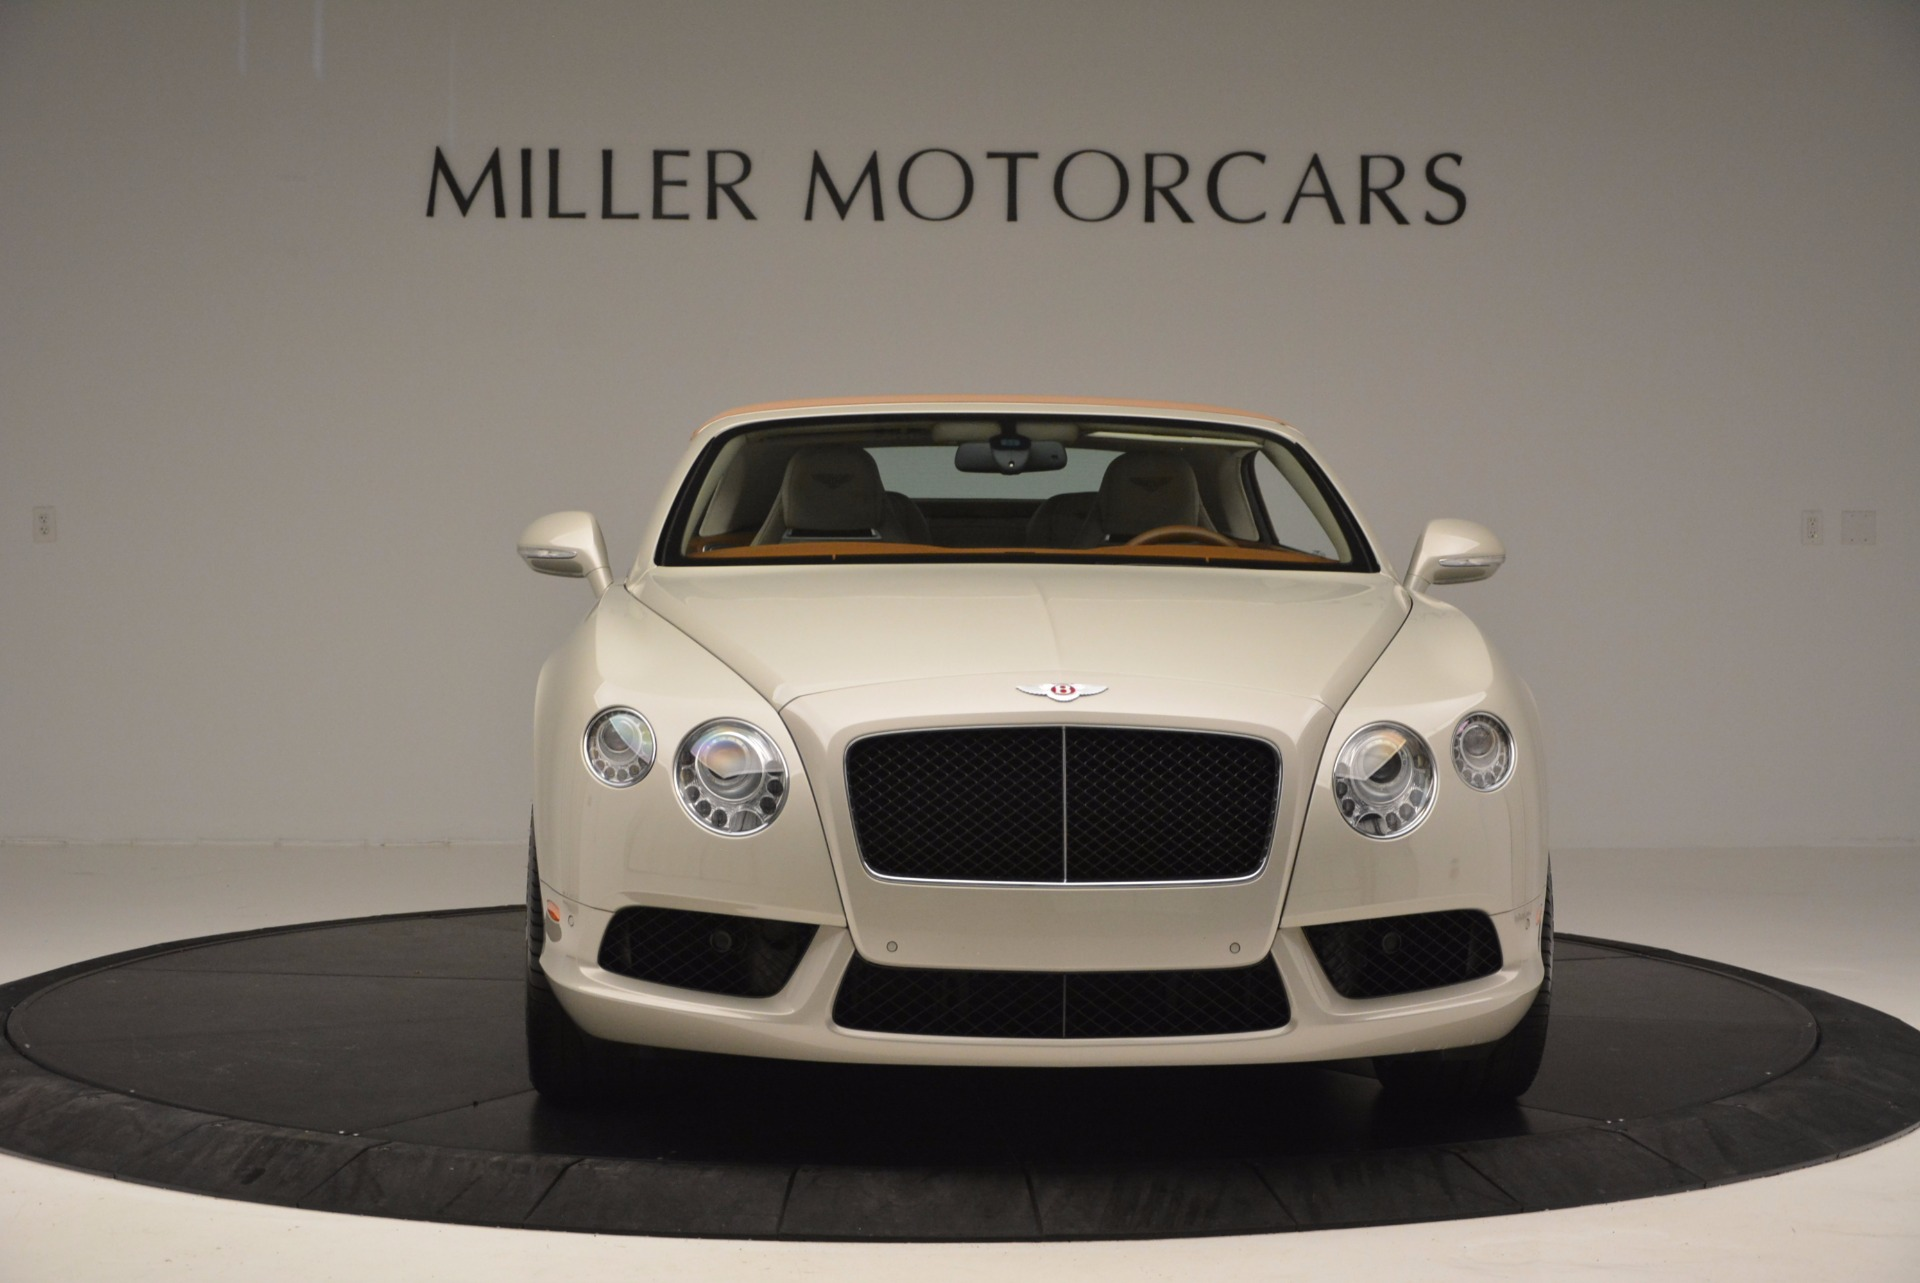 Used 2013 Bentley Continental GTC V8  For Sale In Greenwich, CT. Alfa Romeo of Greenwich, 7108 675_p13